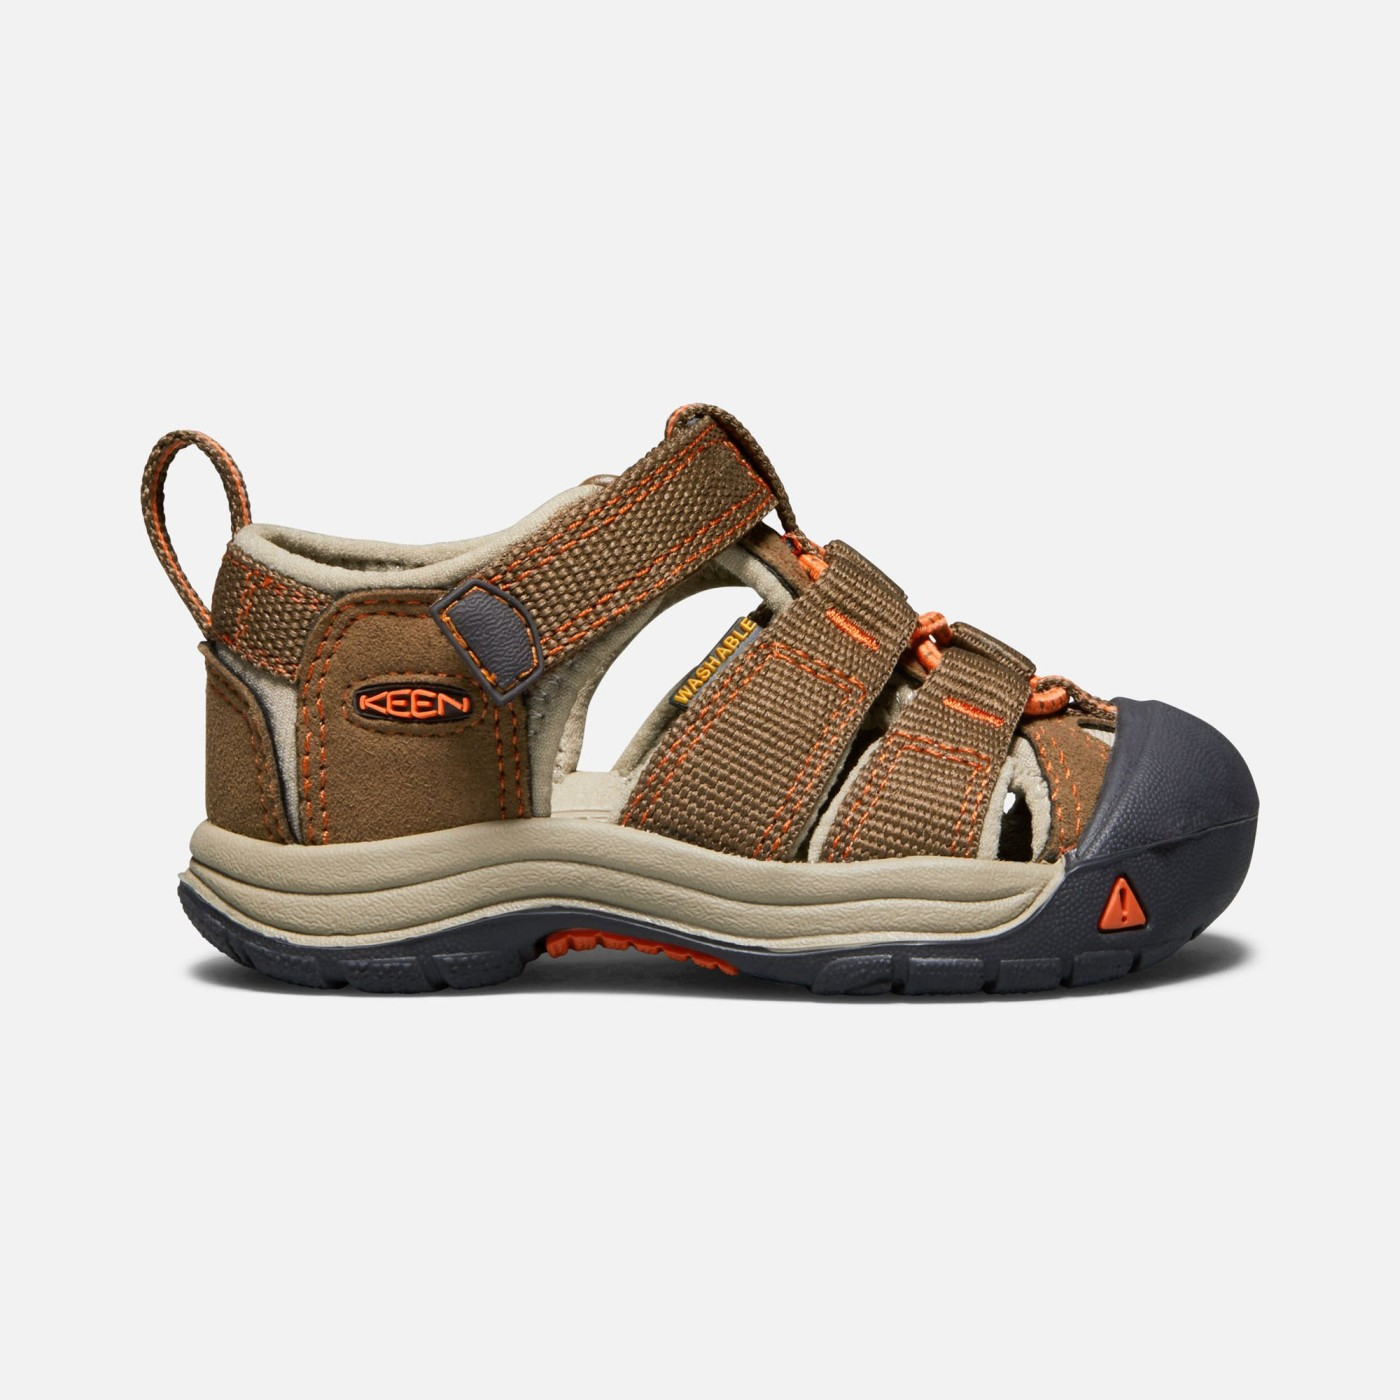 21b6cf36c4b2f Keen Newport H2 Dark Earth Spicy Orange - us